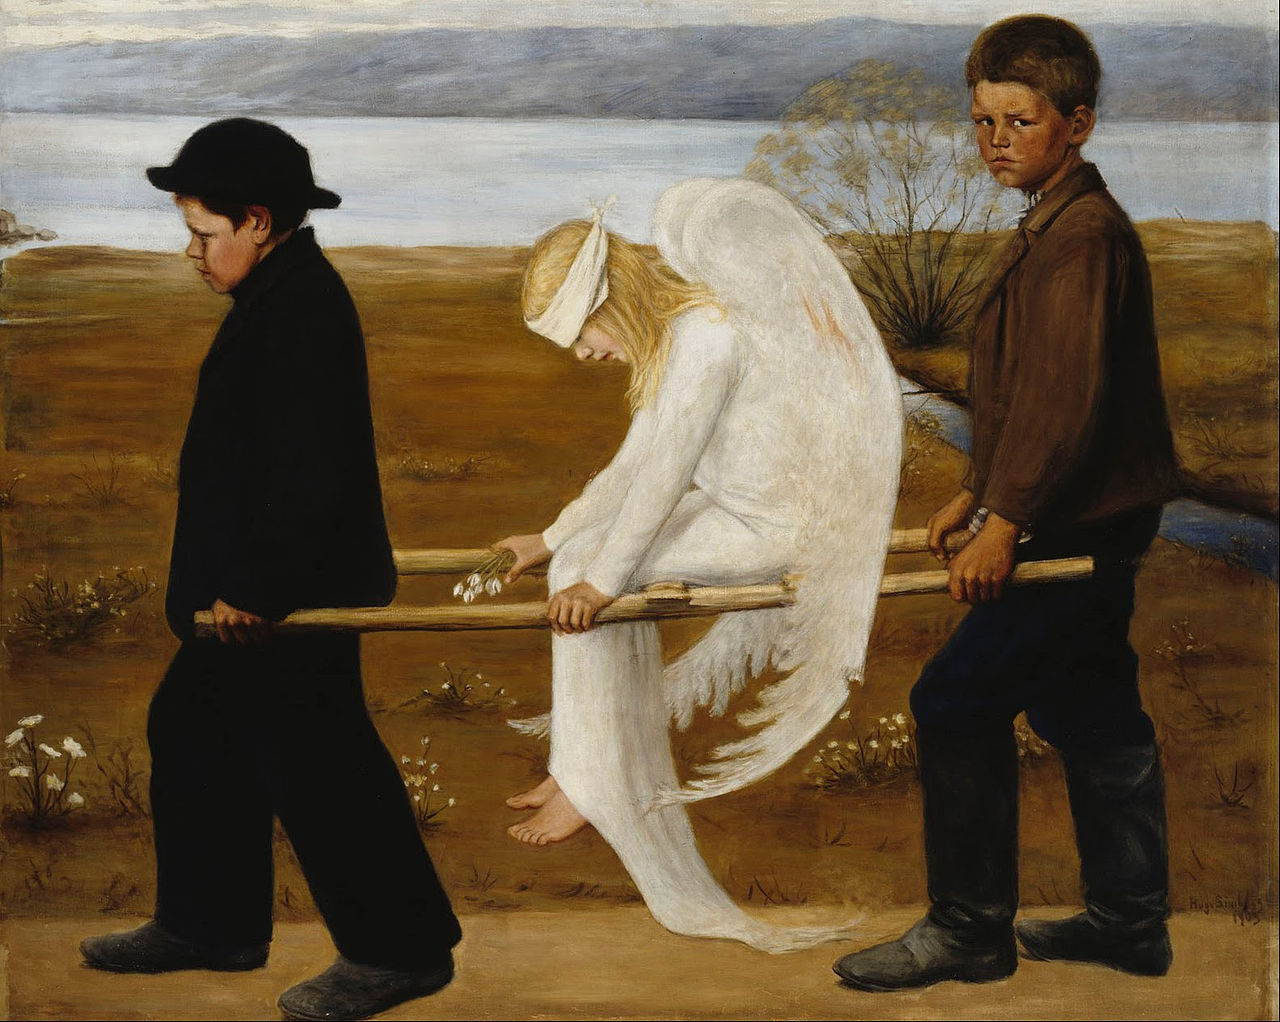 aHugo_Simberg_-_The_Wounded_Angel_-_Google_Art_Project